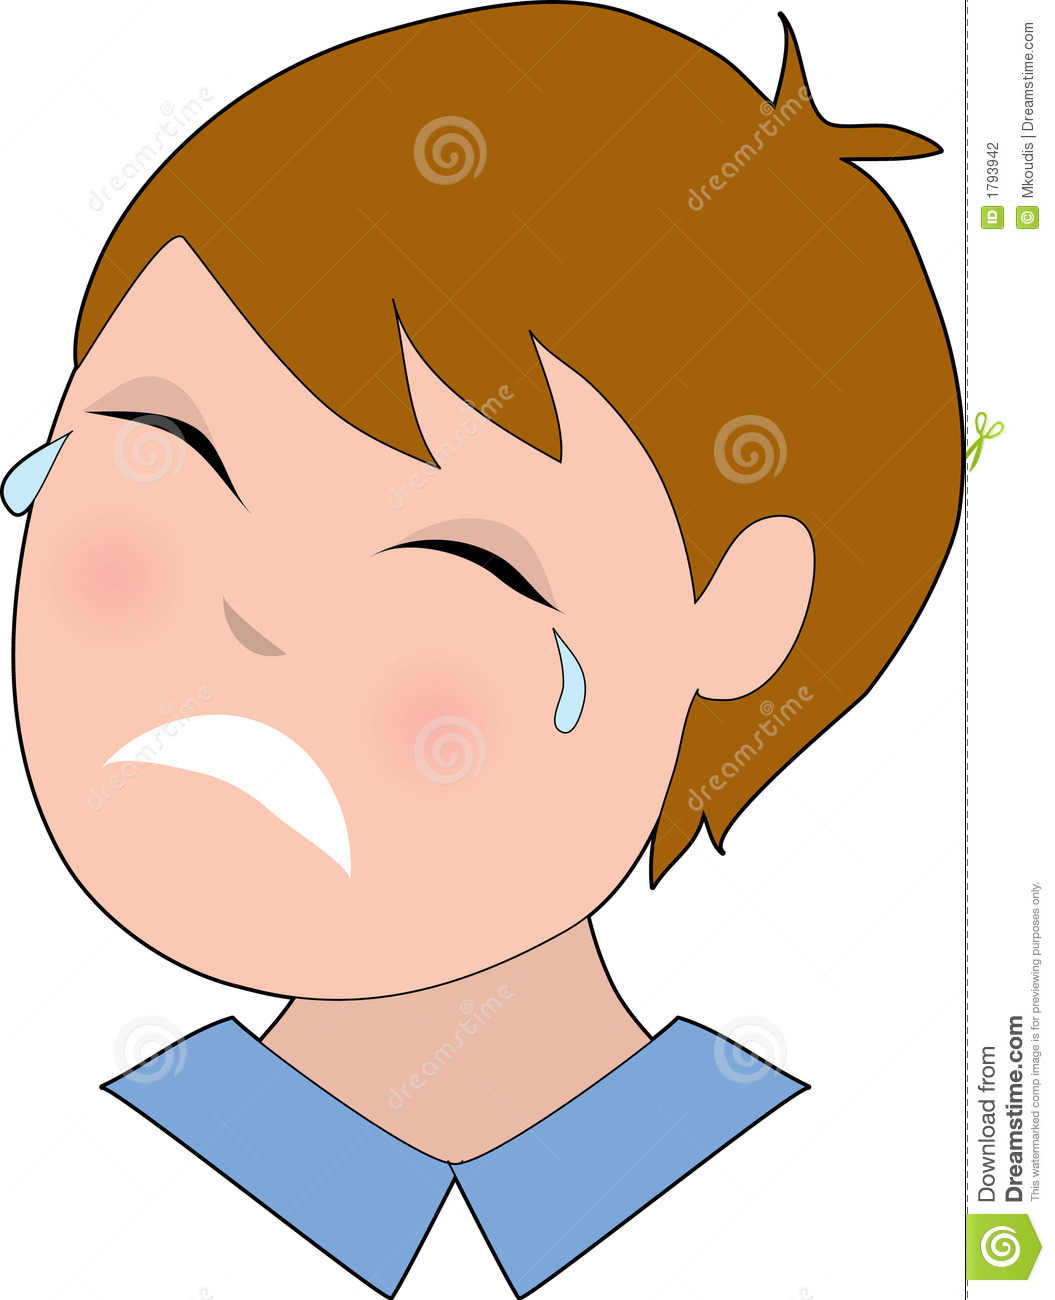 Man Crying Clipart - Clipart Suggest